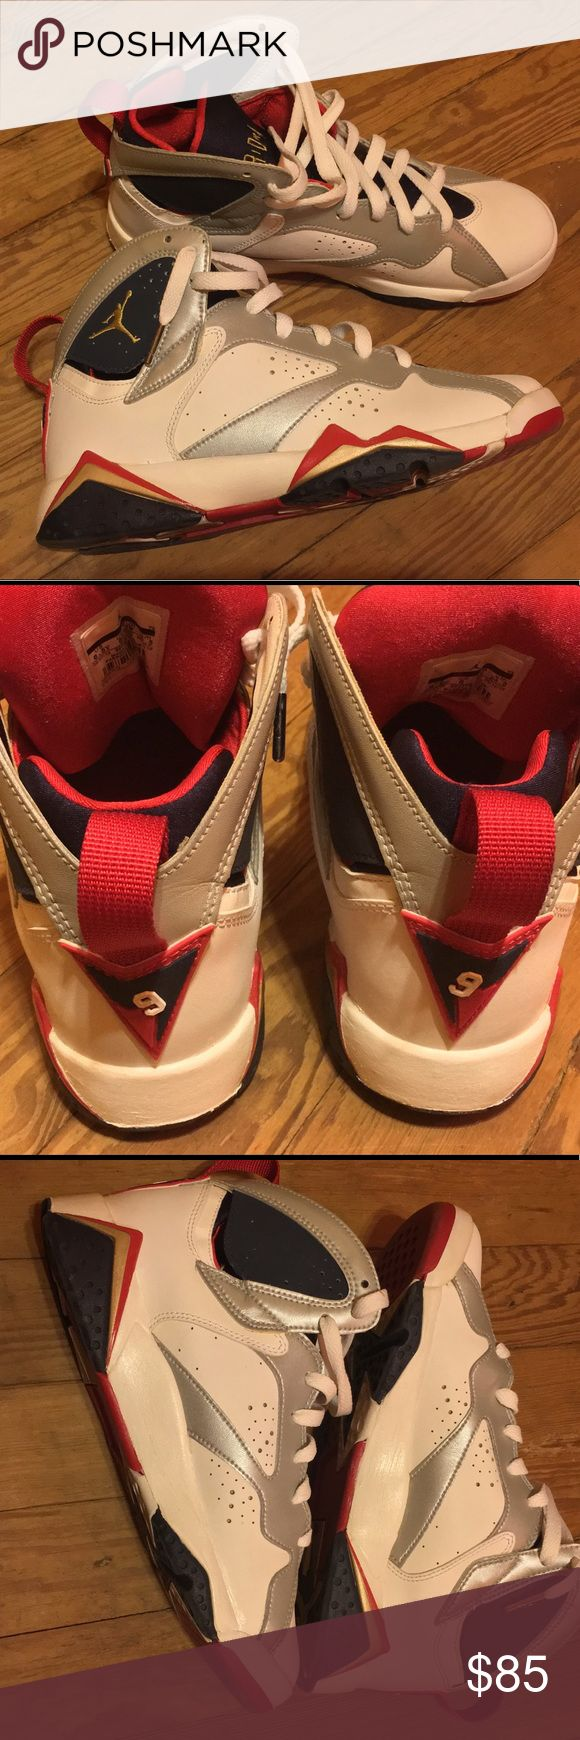 Jordan Retro 7 Olympic (2012 Release) Womens 8.5 These Jordan Retro 7s are fitted in gradeschool size 6.5Y; they're unisex shoes for boys and girls. These shoes are in great condition however there is cracking around the bottom of the shoe (the cracking is only noticeable up close) due to white shoe polish that was applied to them. The overall structure of the shoes are in excellent condition; there is no sole seperation, creasing etc.The condition of the shoes in the pics are the exact…